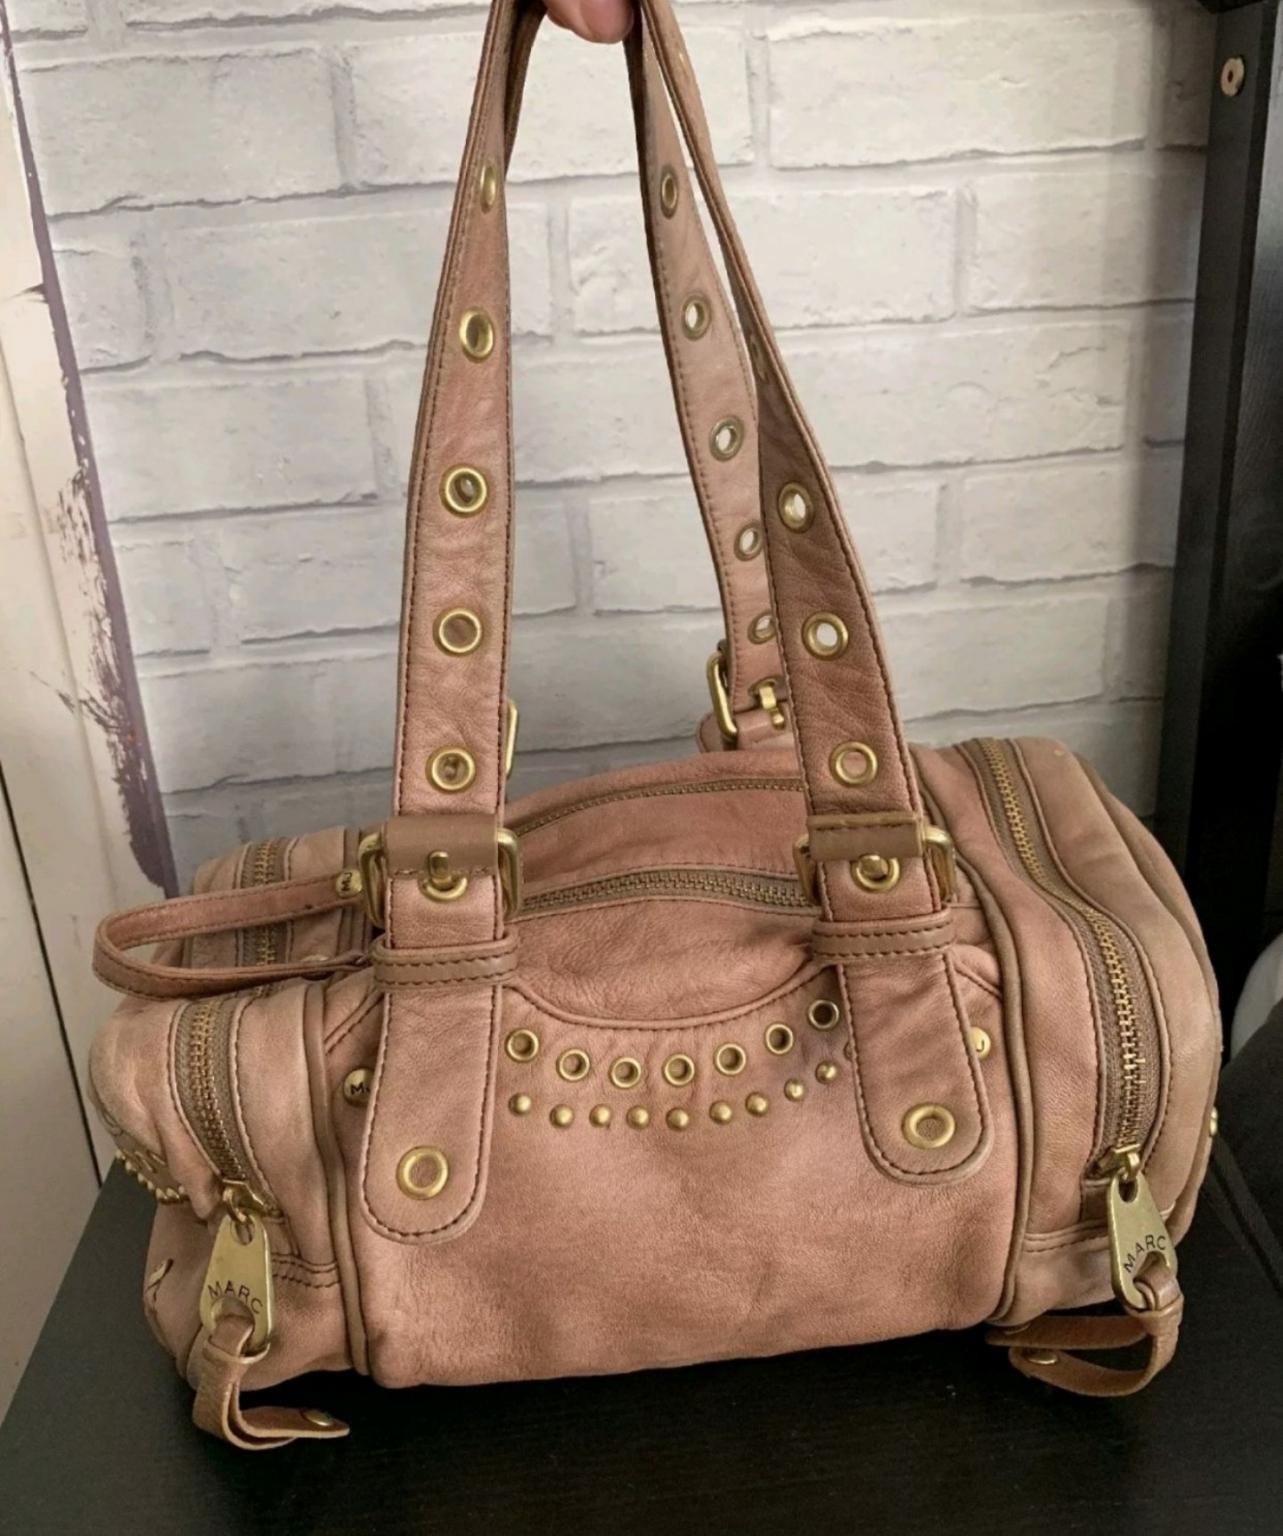 cf52679f4de05 genuine marc Jacobs handbag collection in Knowsley for £50.00 for sale -  Shpock